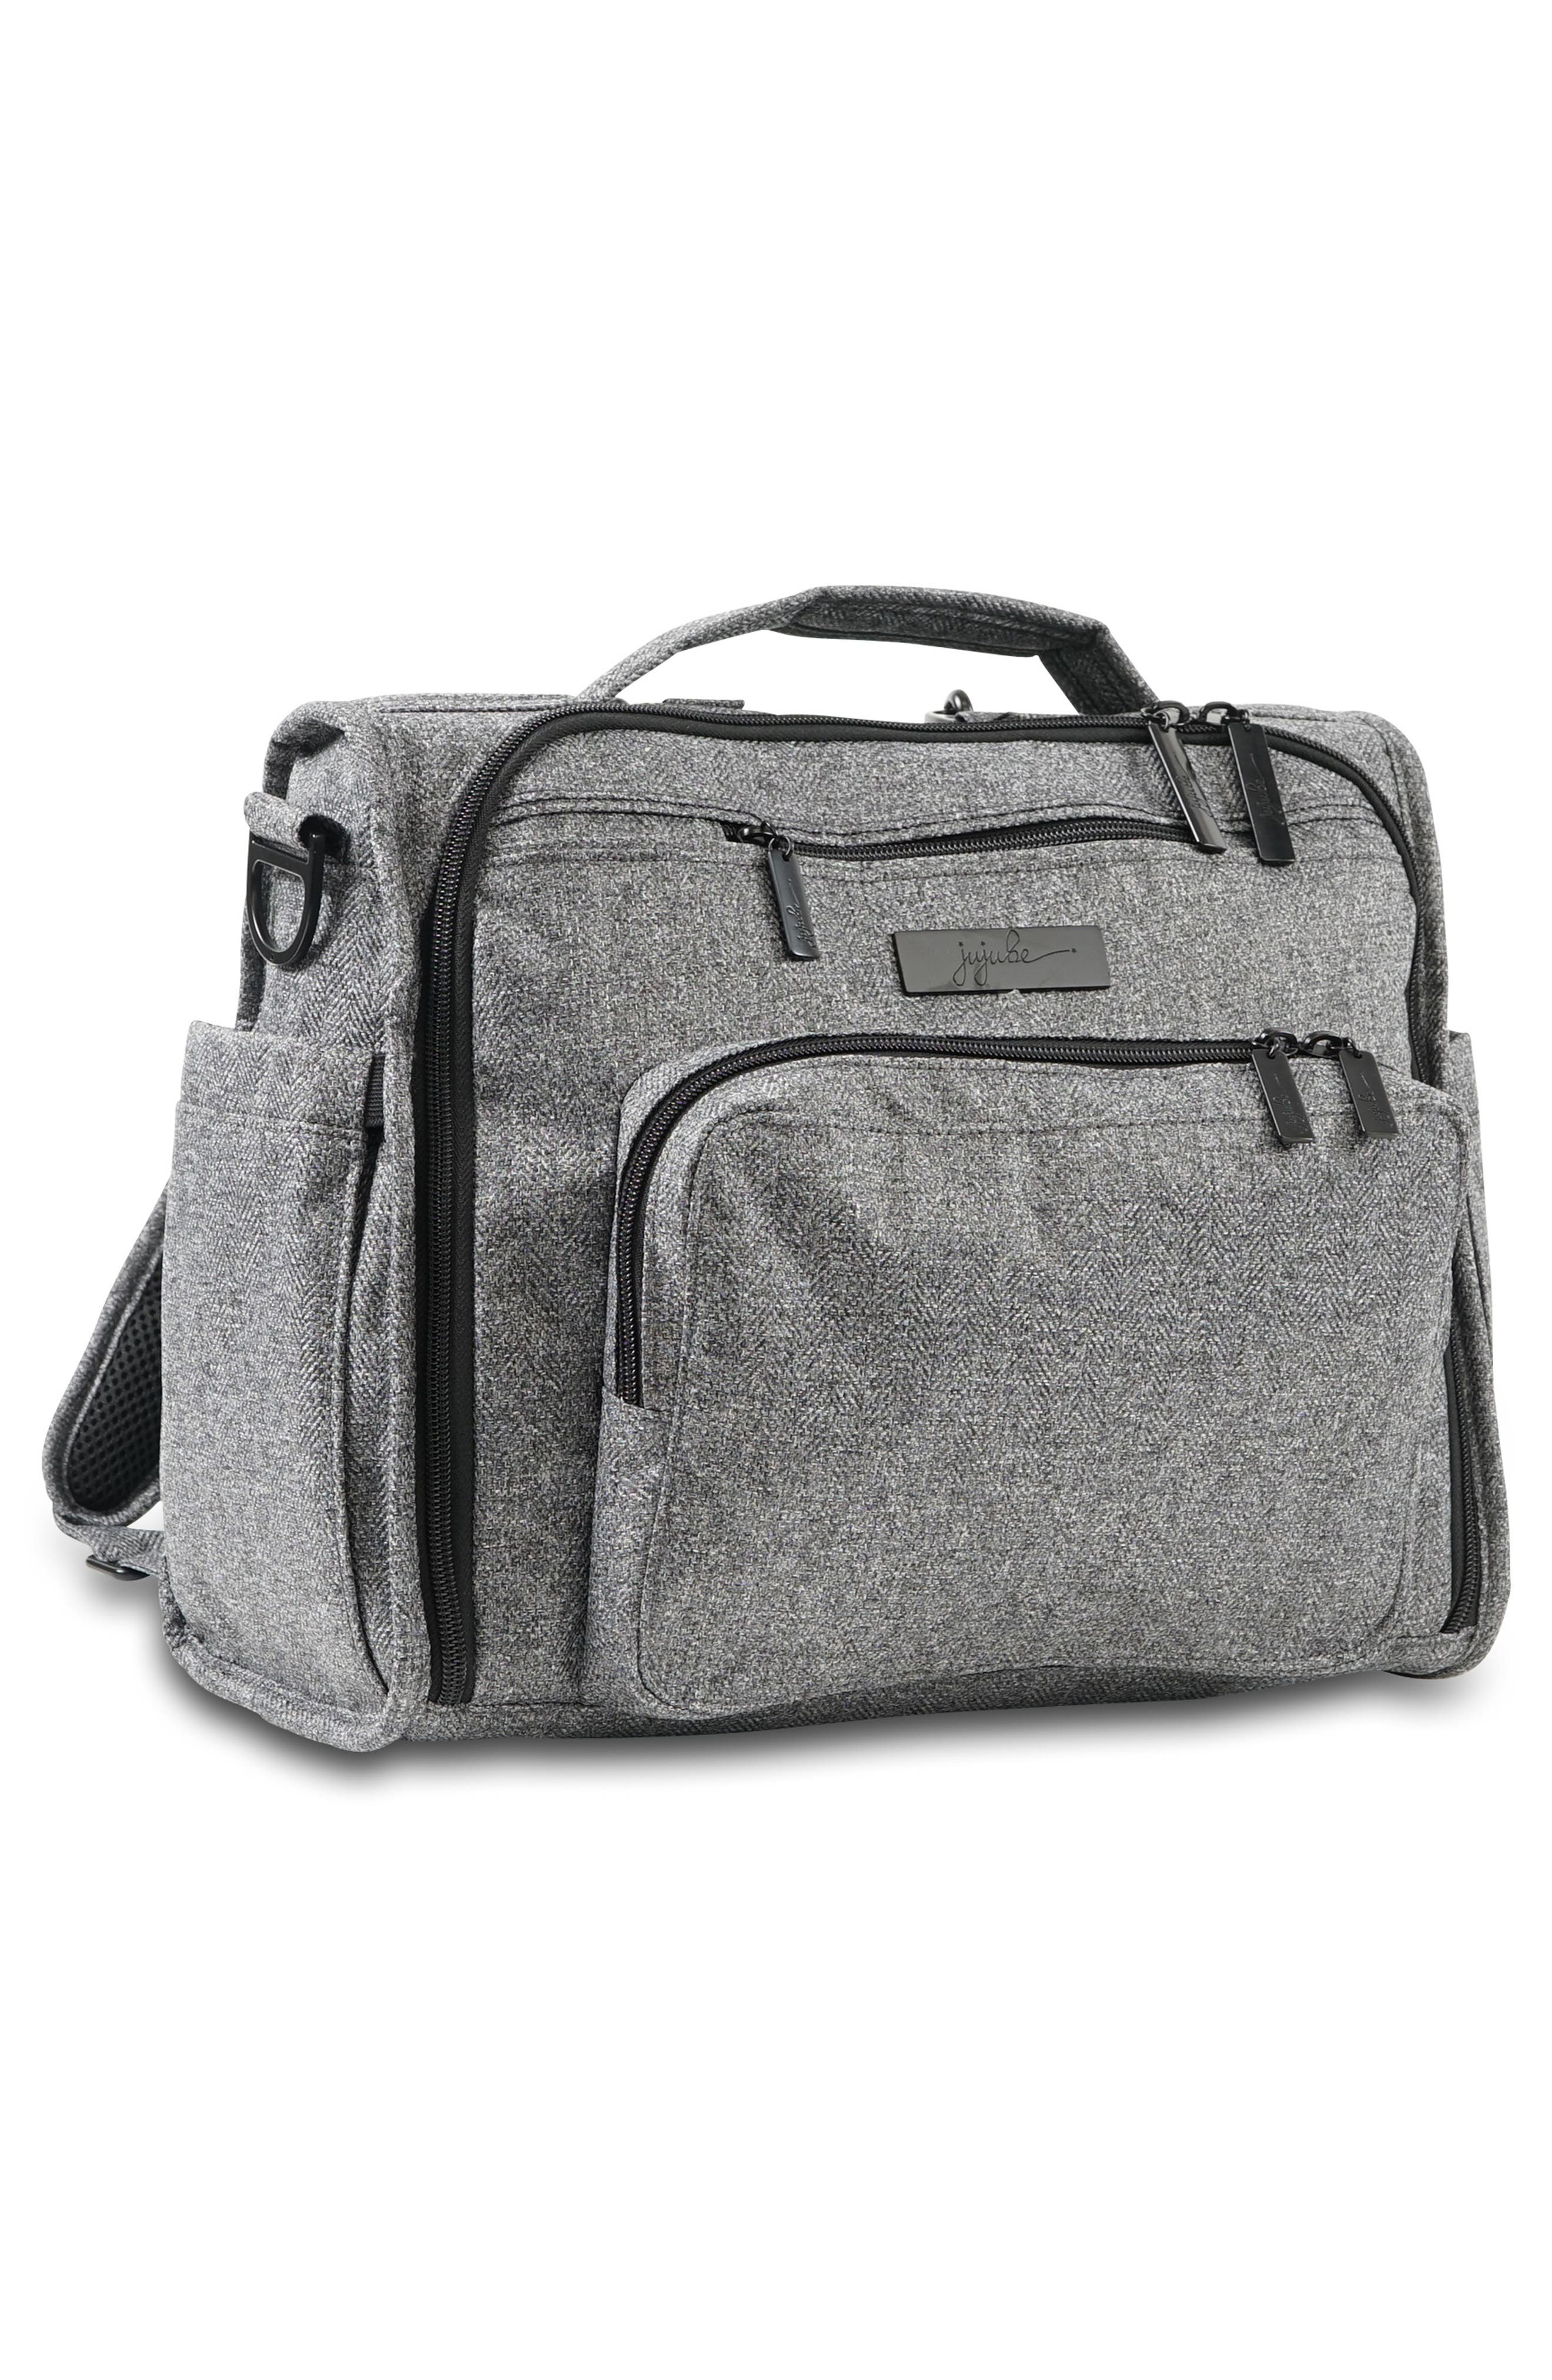 'BFF - Onyx Collection' Diaper Bag,                             Alternate thumbnail 4, color,                             GRAY MATTER